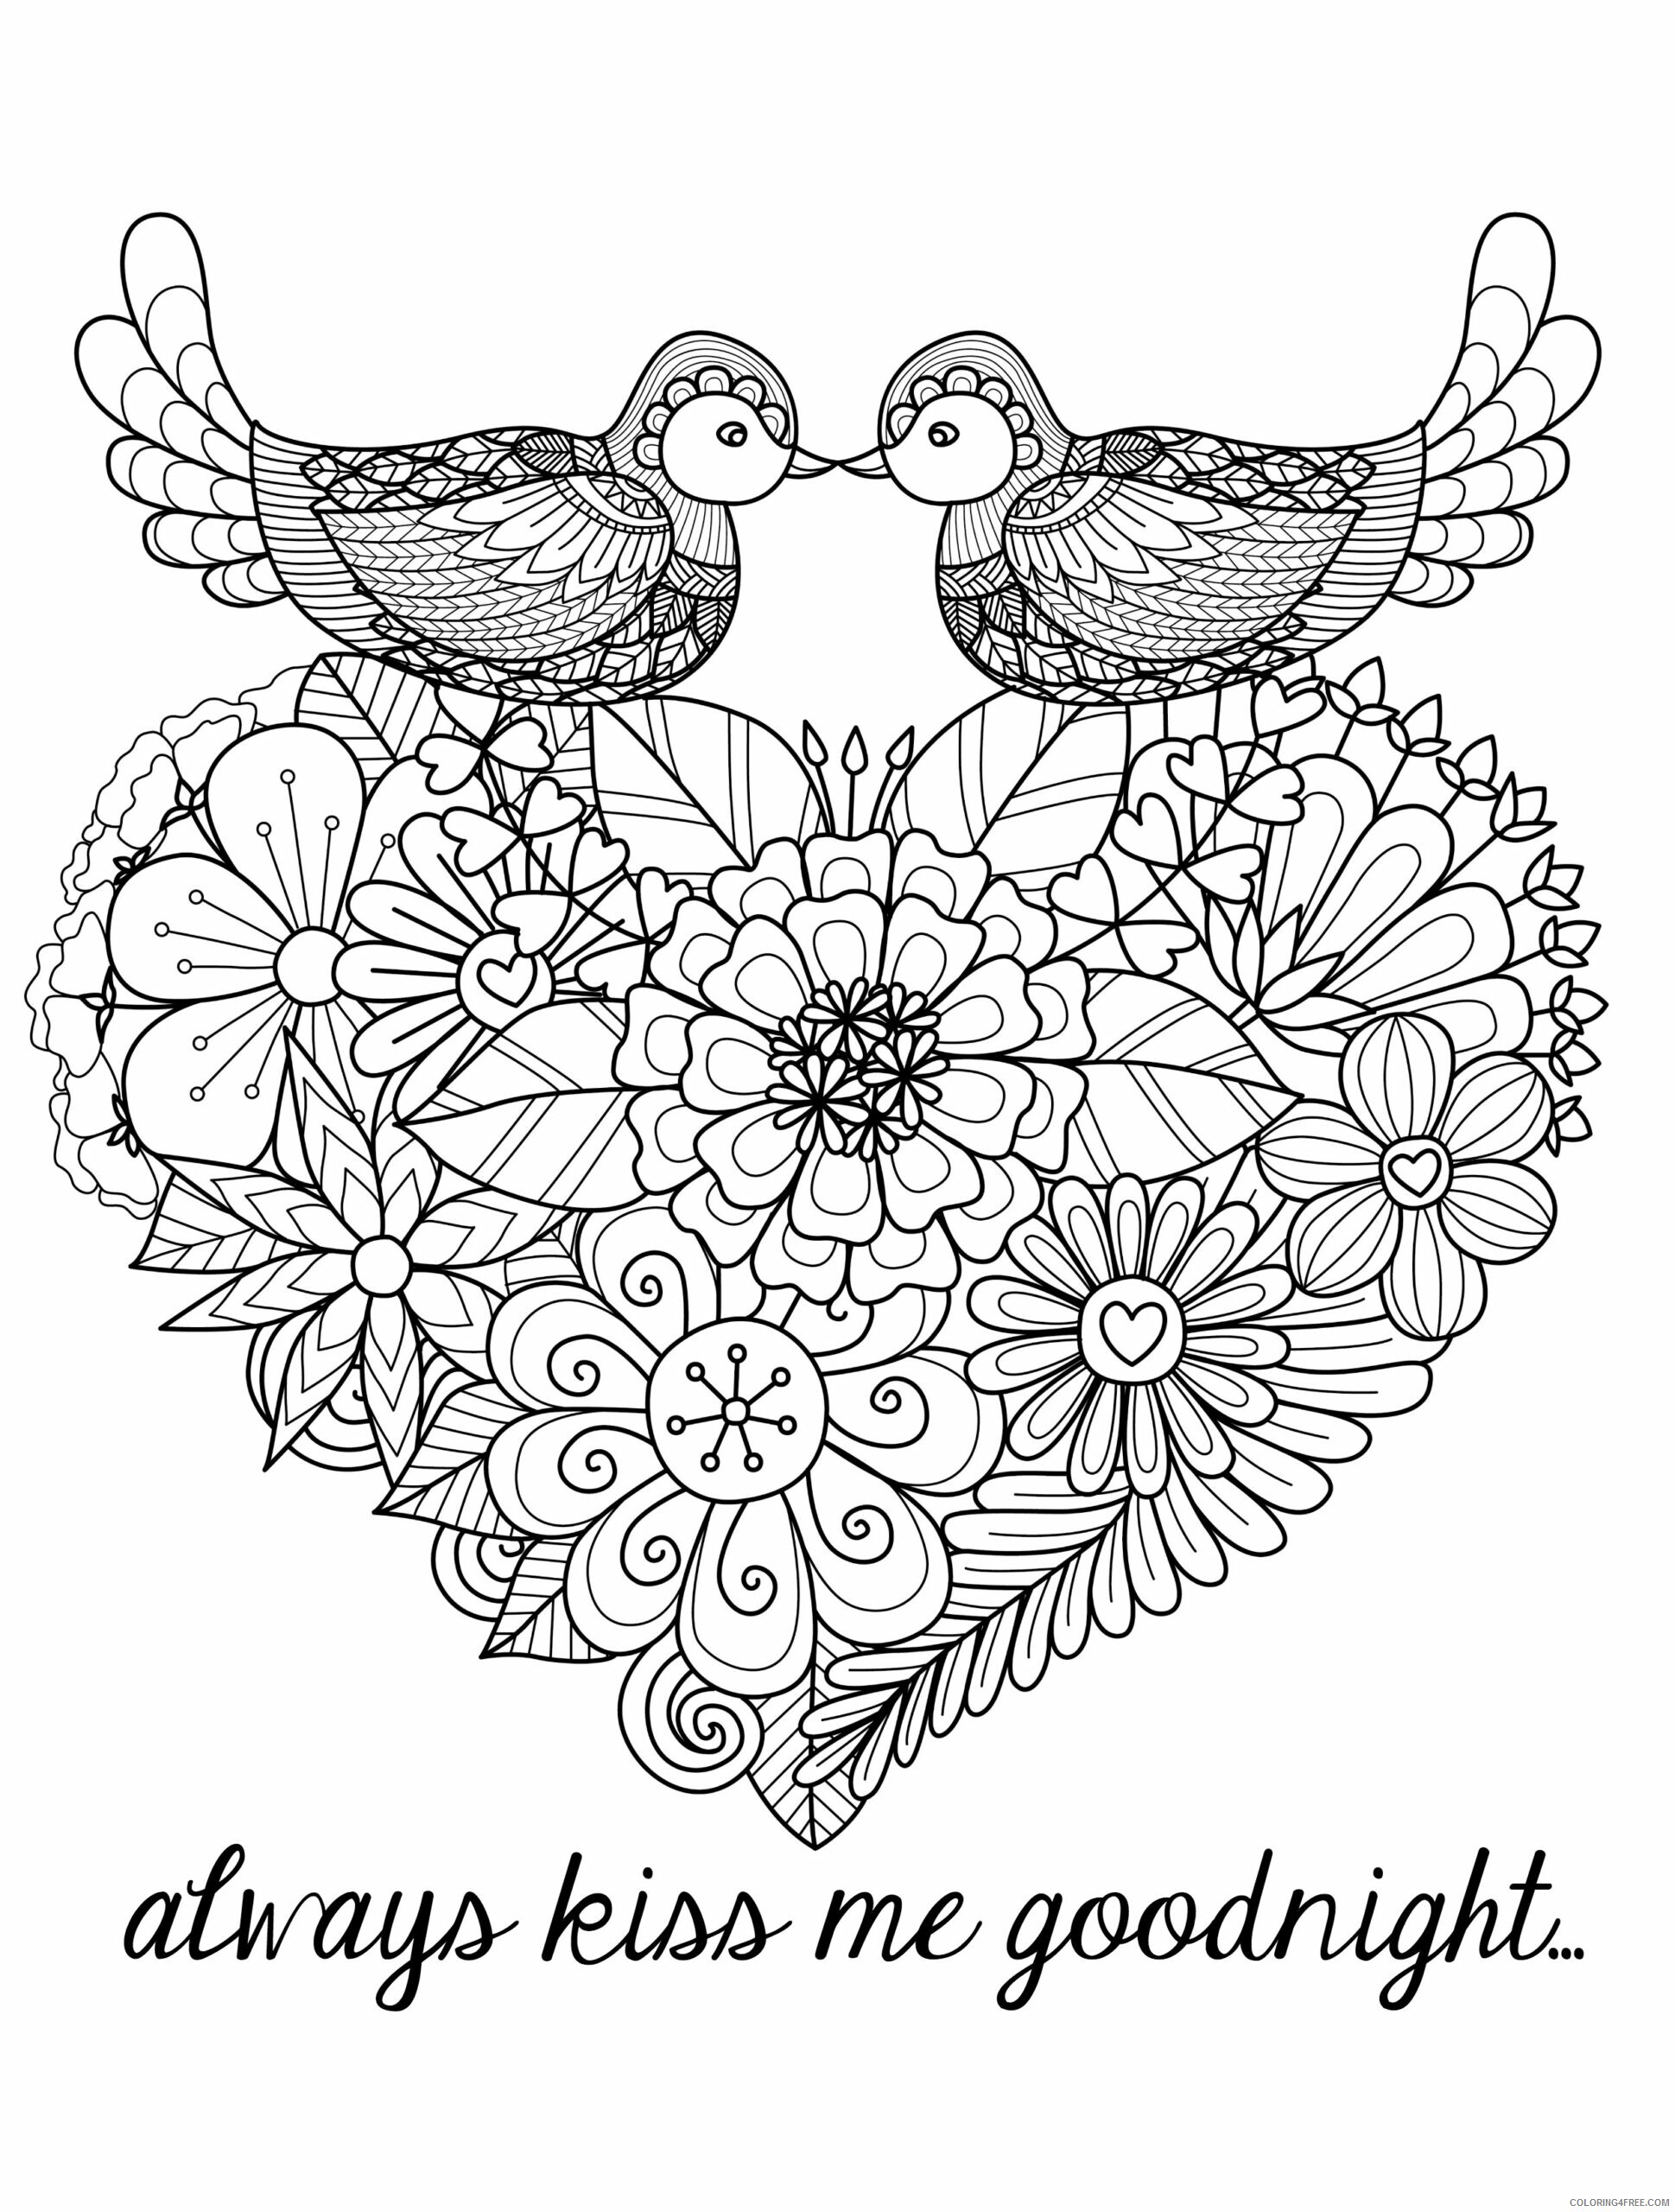 Adult Valentines Day Coloring Pages Kiss Me Goodnight Printable 2020 506 Coloring4free